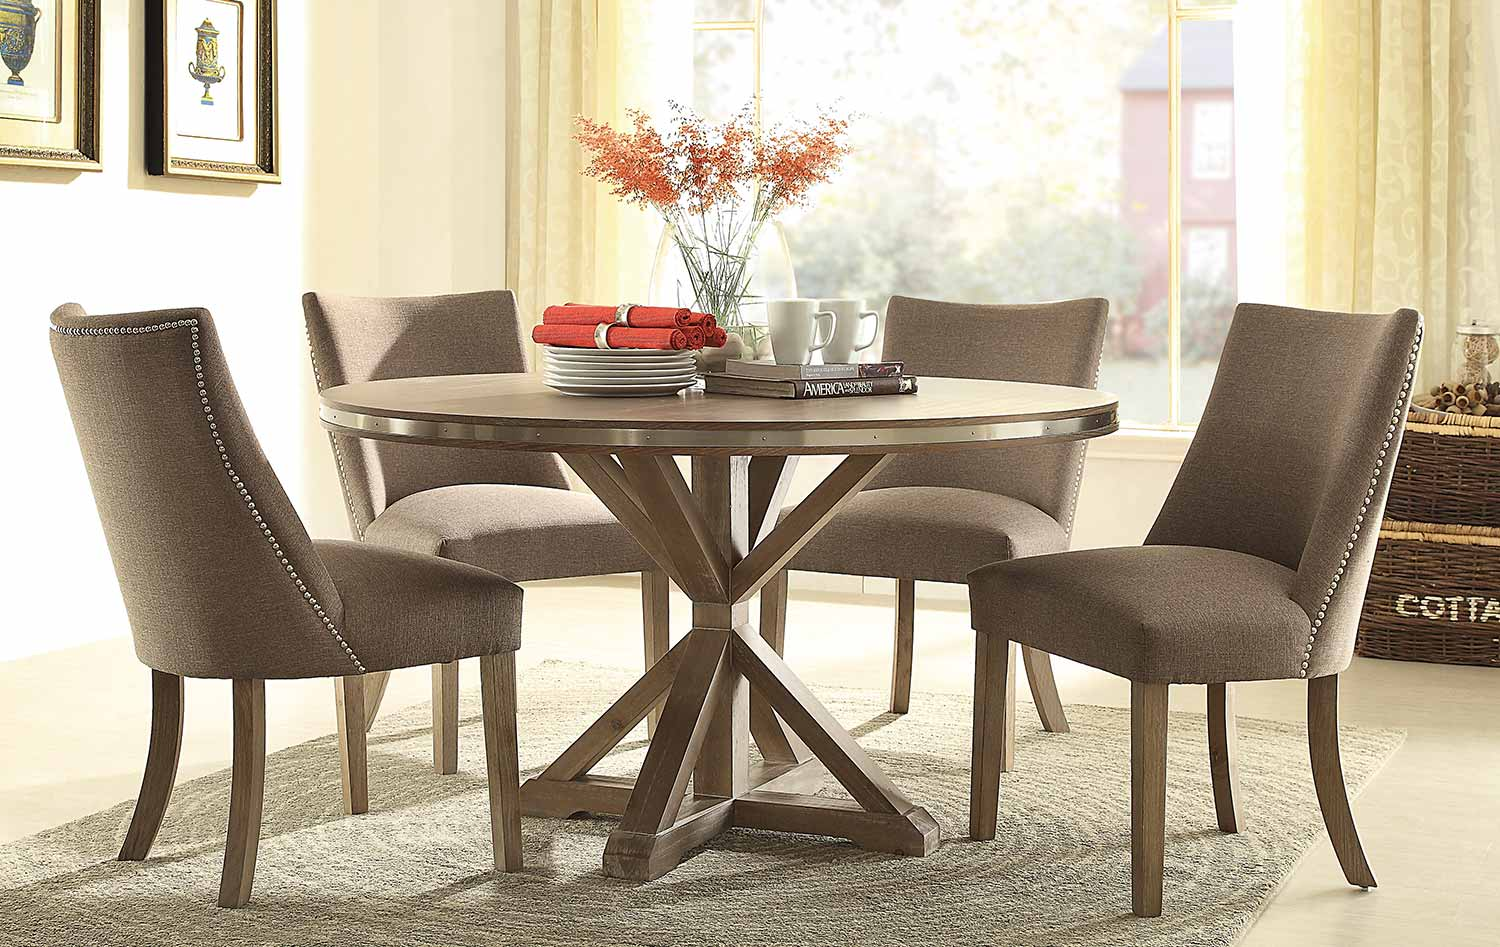 Homelegance Beaugrand Round Dining Set - Brown